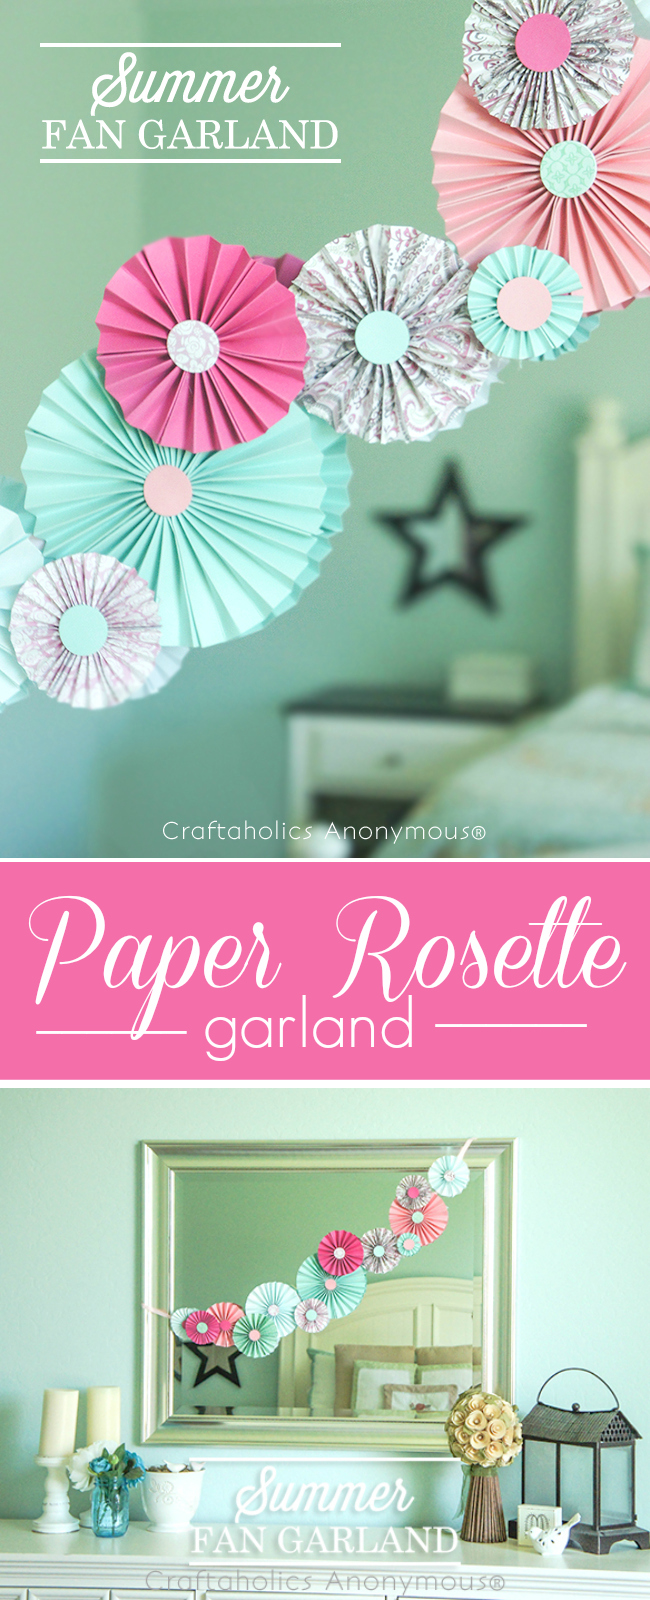 Summer Paper rosette garland. Easy DIY garland. These are great for parties or everyday decor.